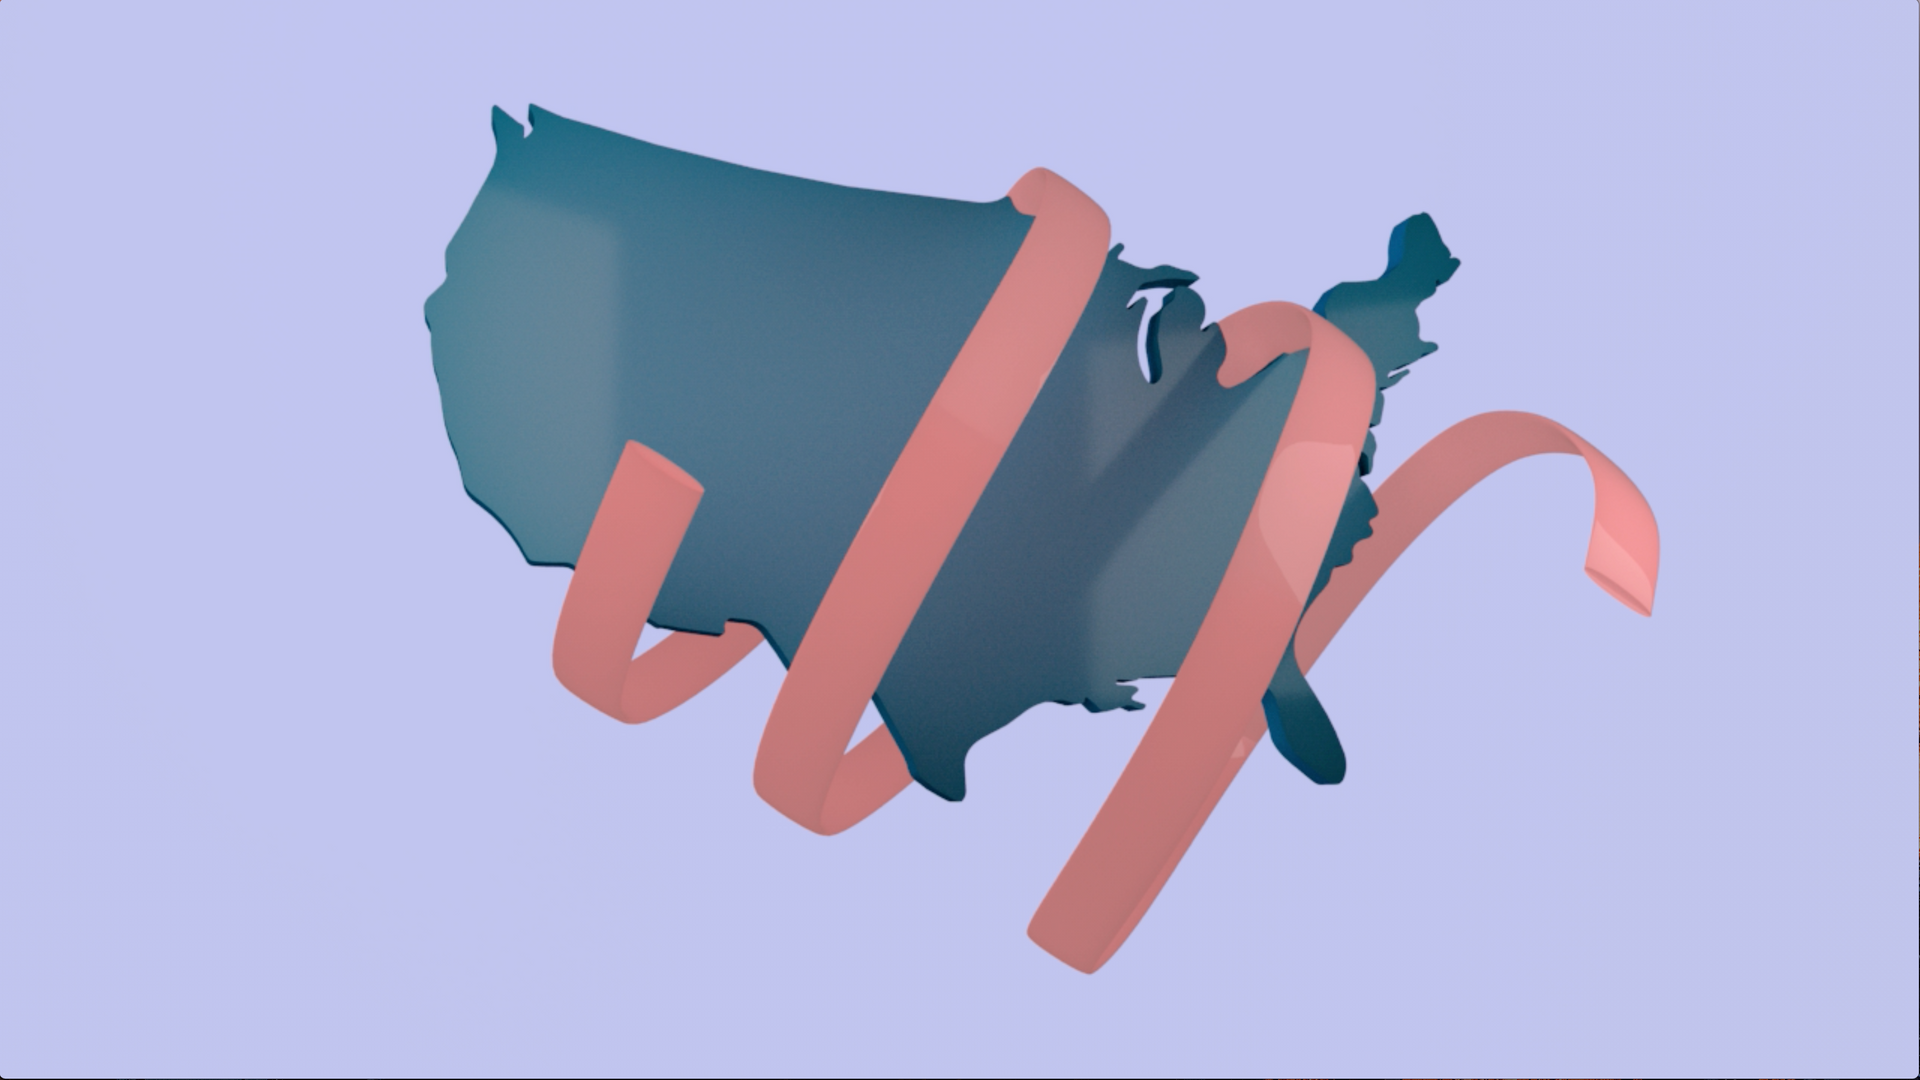 Still from Masters Thesis Animation